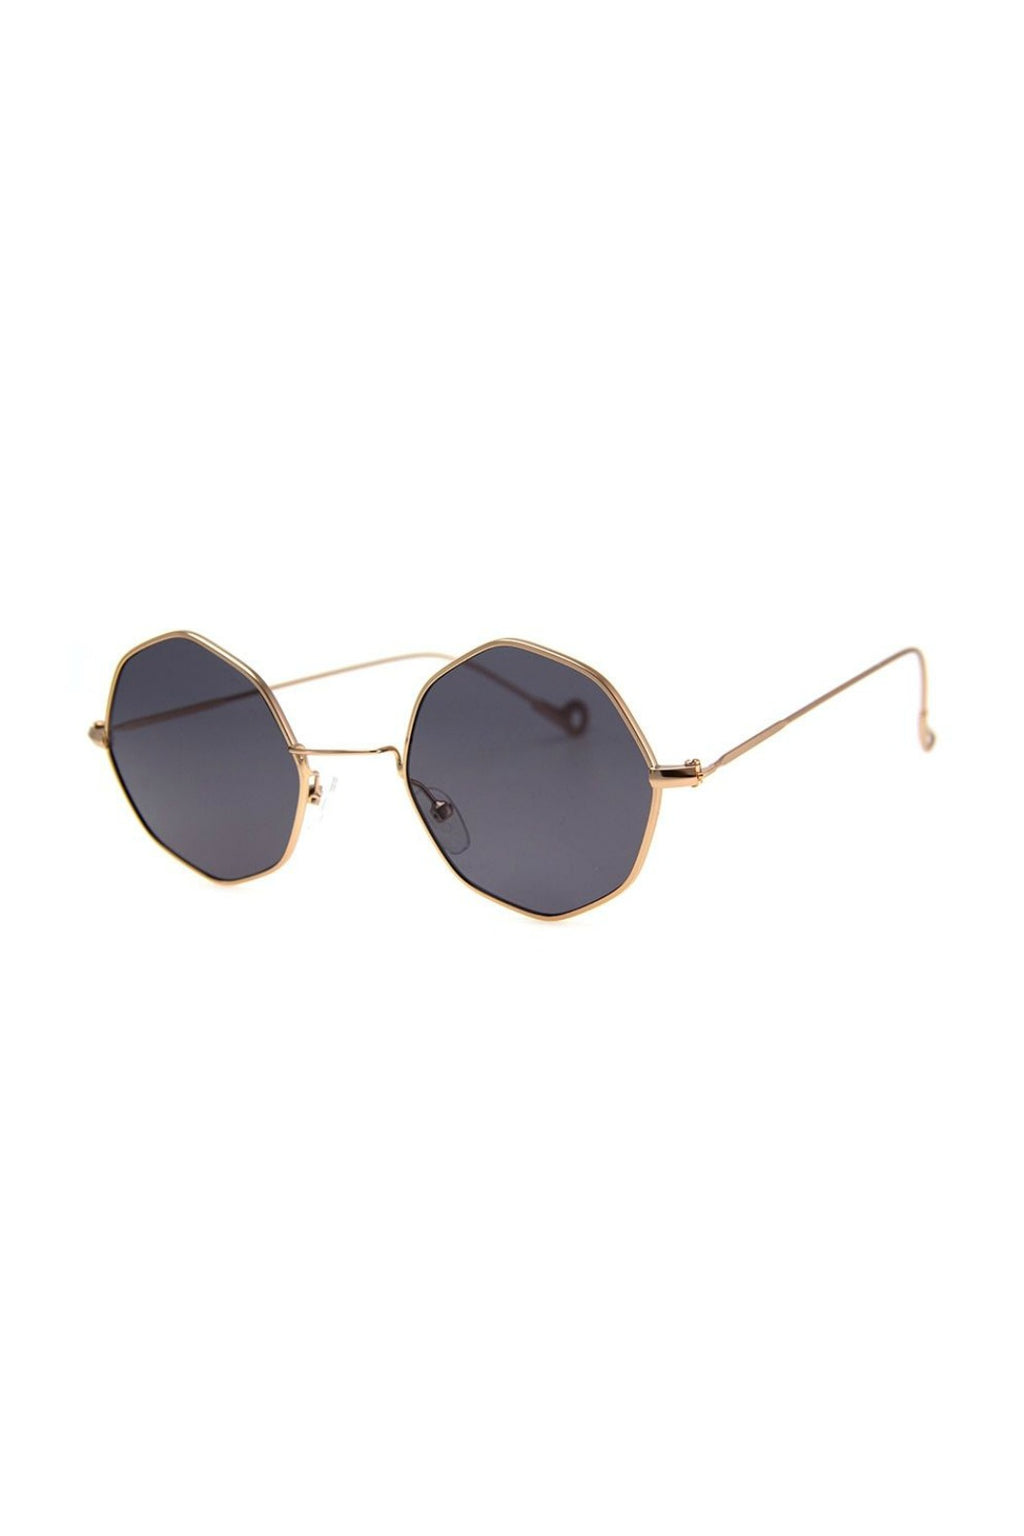 Memory Lane Sunnies - Matte Gold